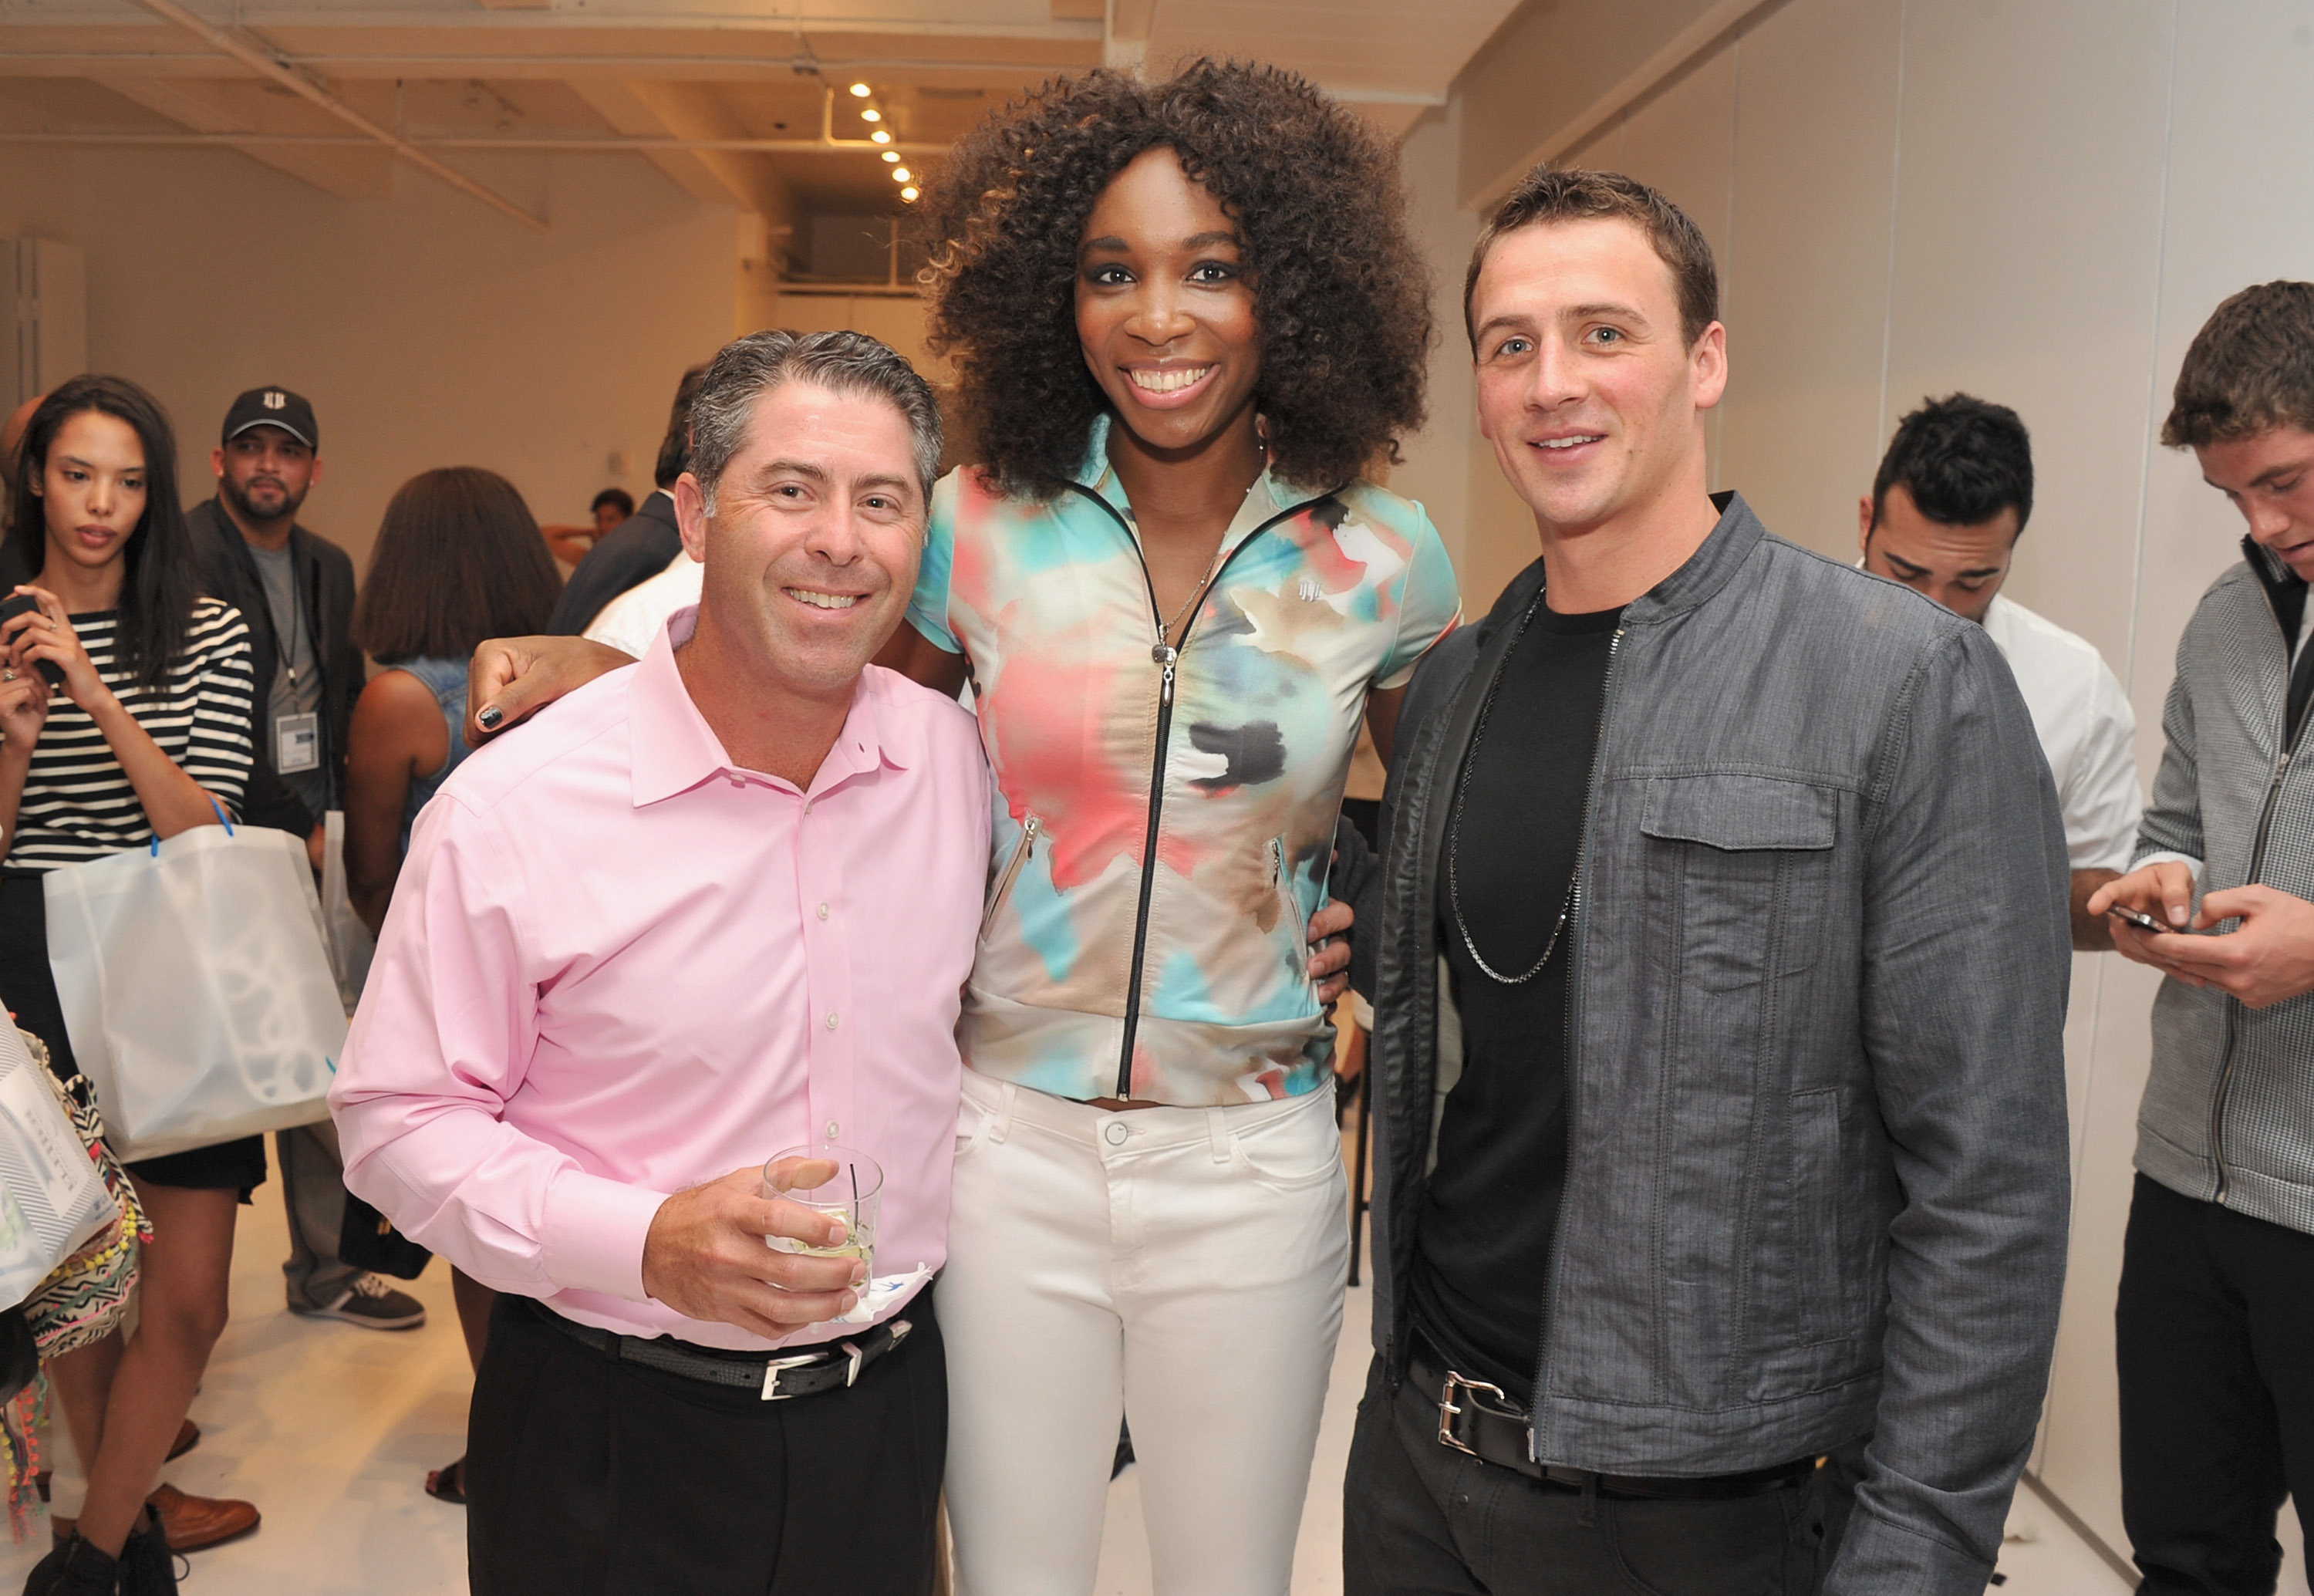 Ryan Lochte may win dating pool with Miss USA - NY Daily News